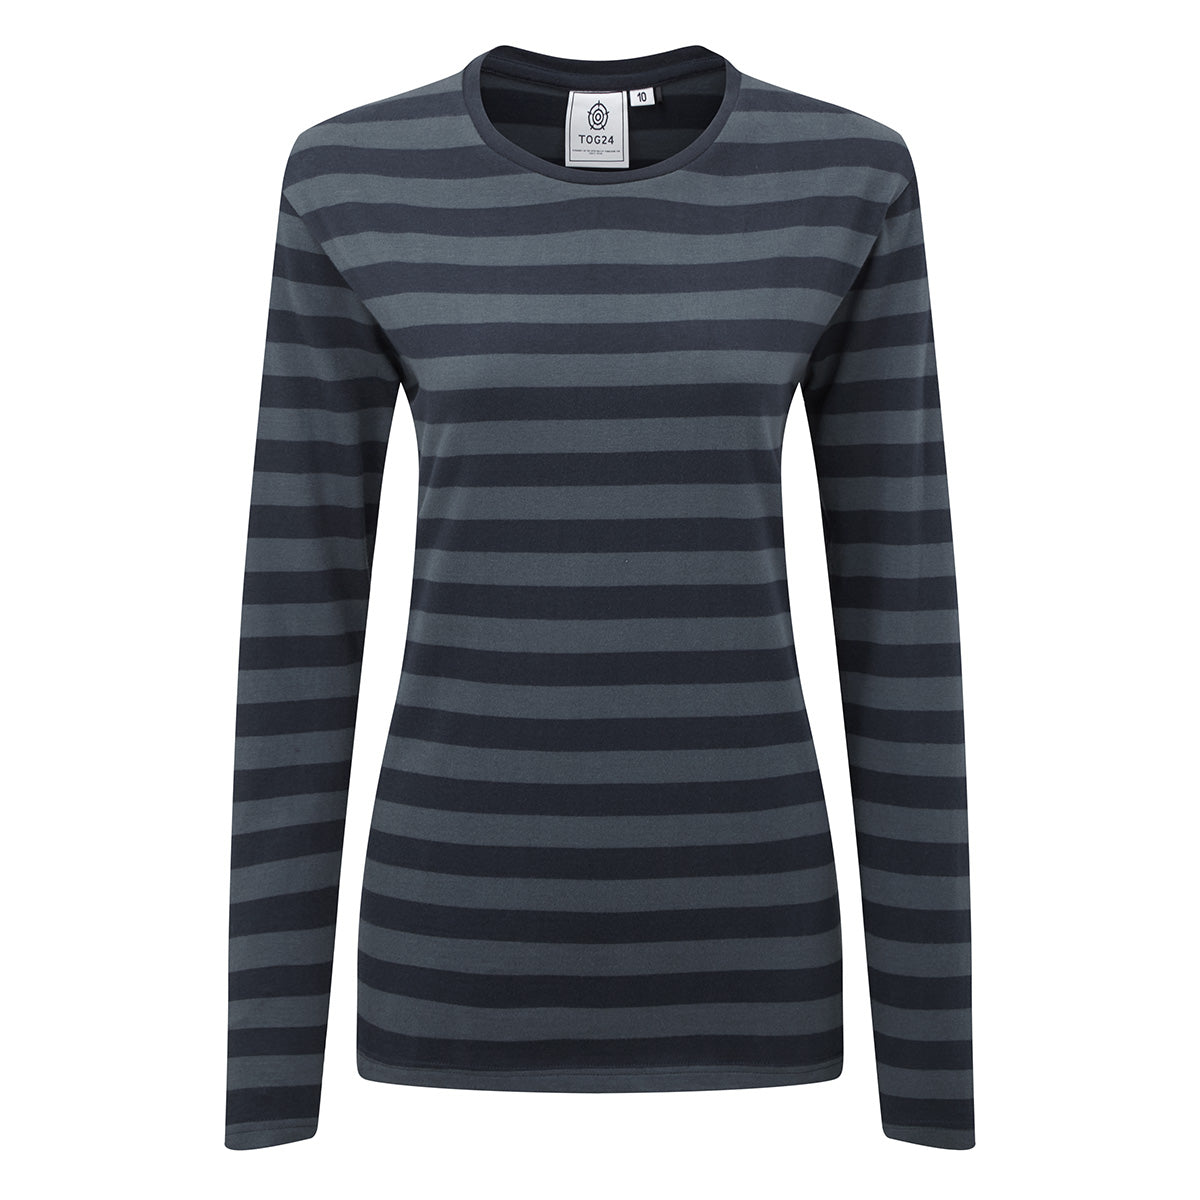 Sandsend Womens Long Sleeve Stripe T-Shirt - Dark Indigo image 4